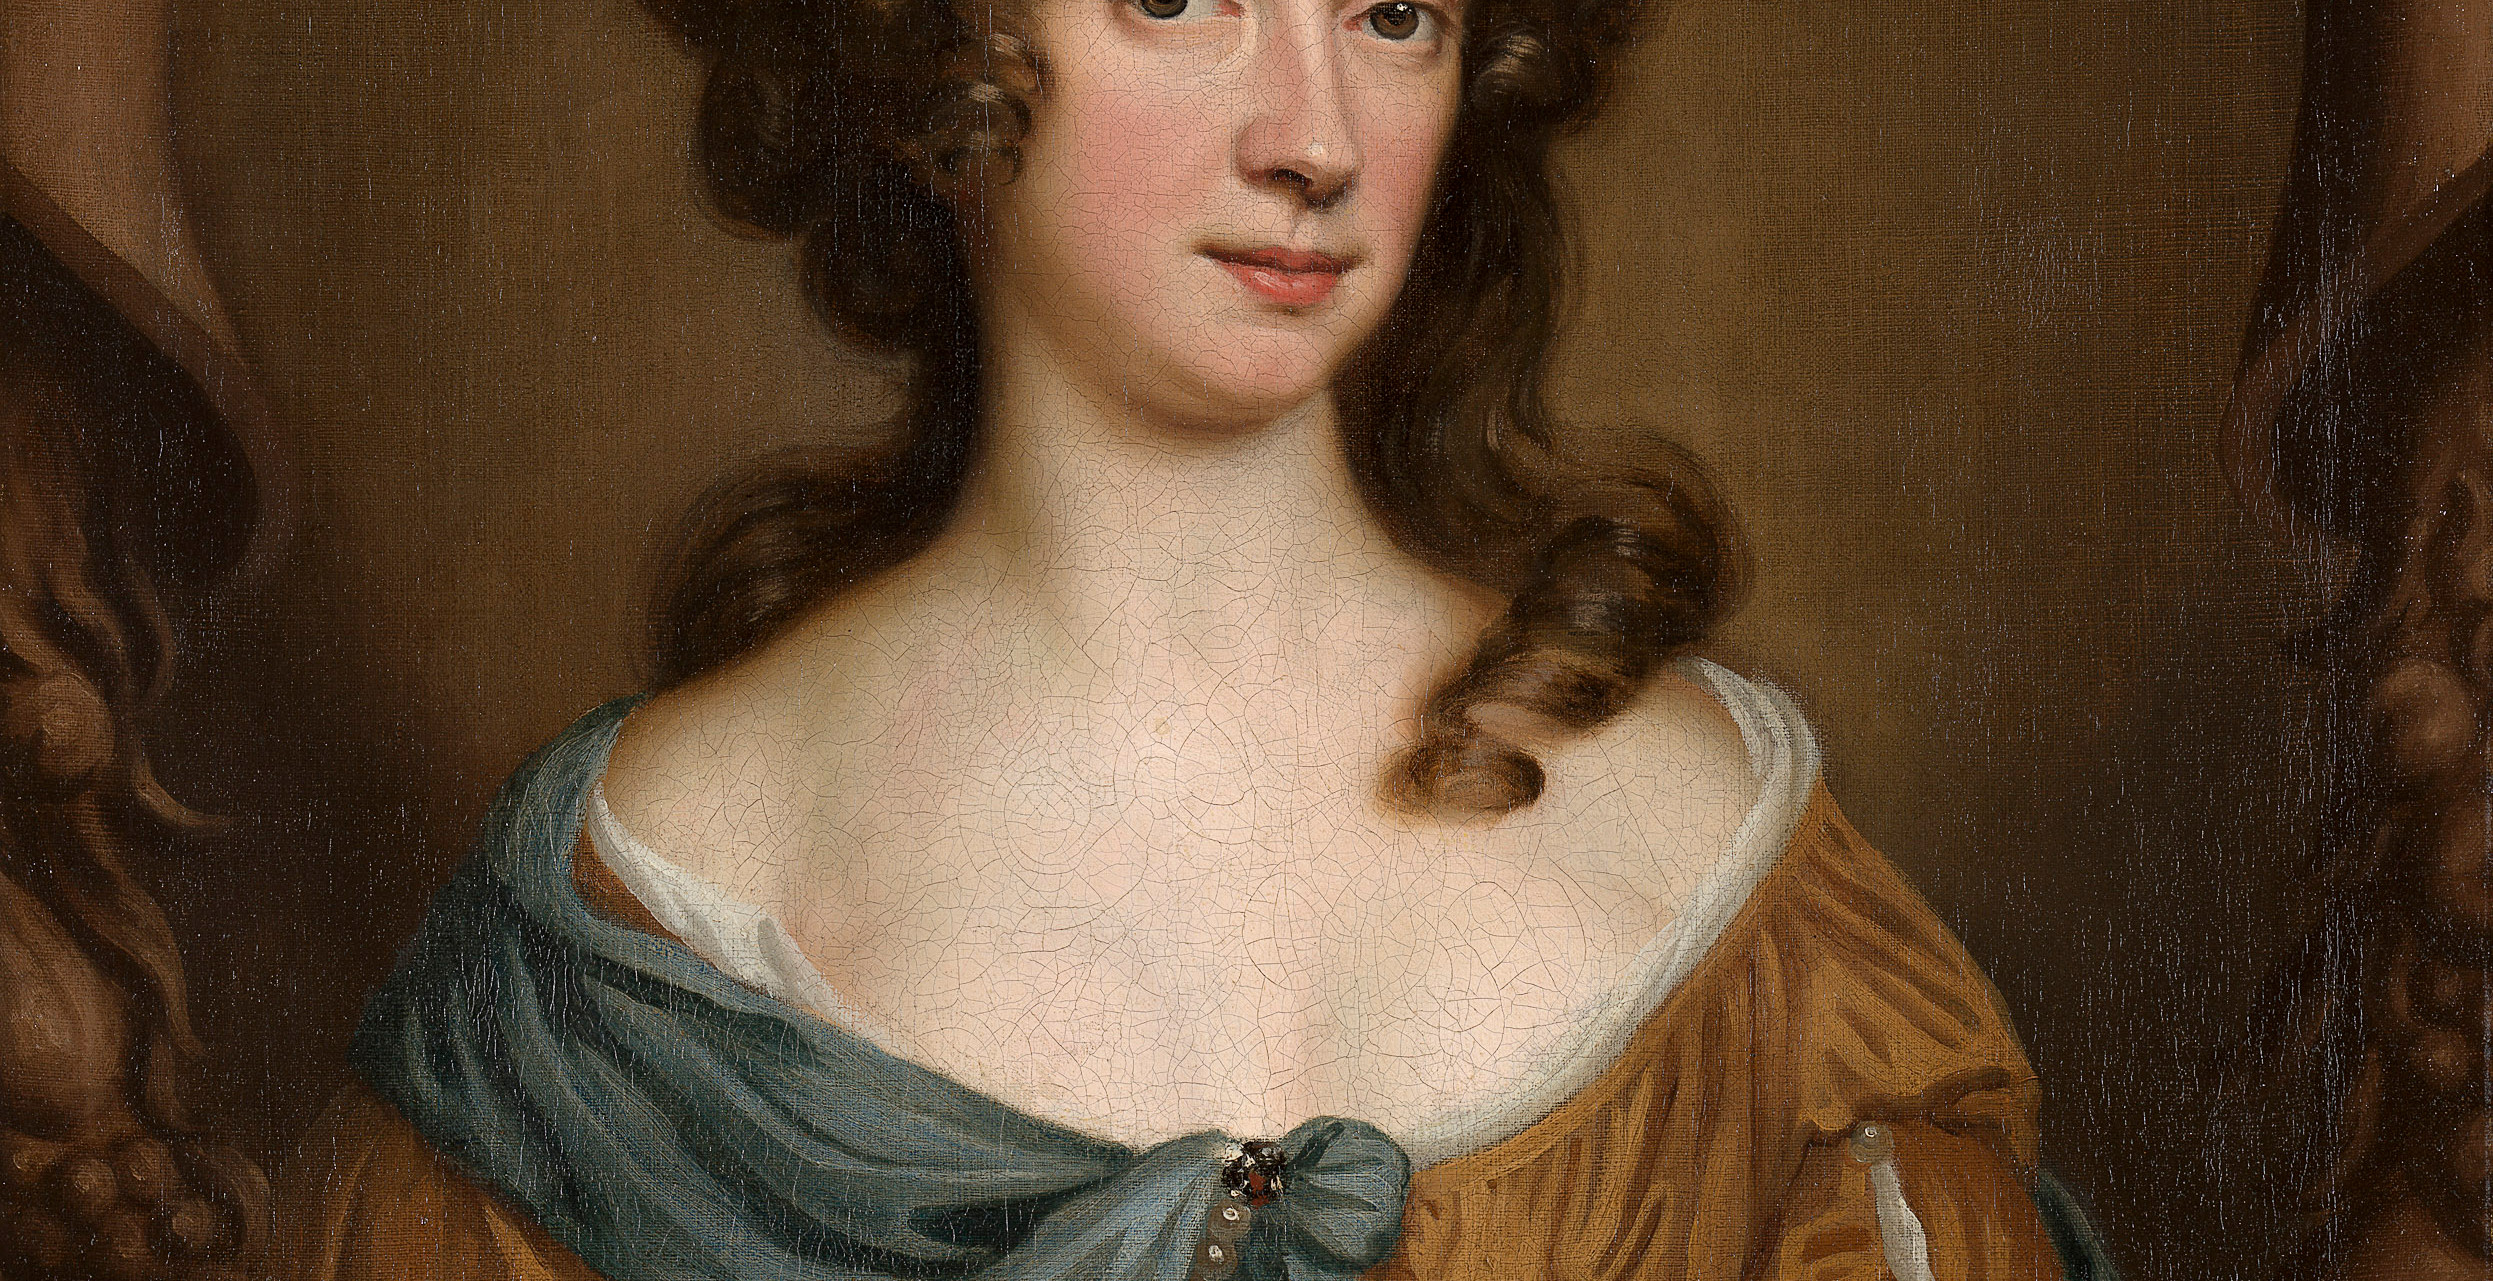 By Mary Beale, 1680